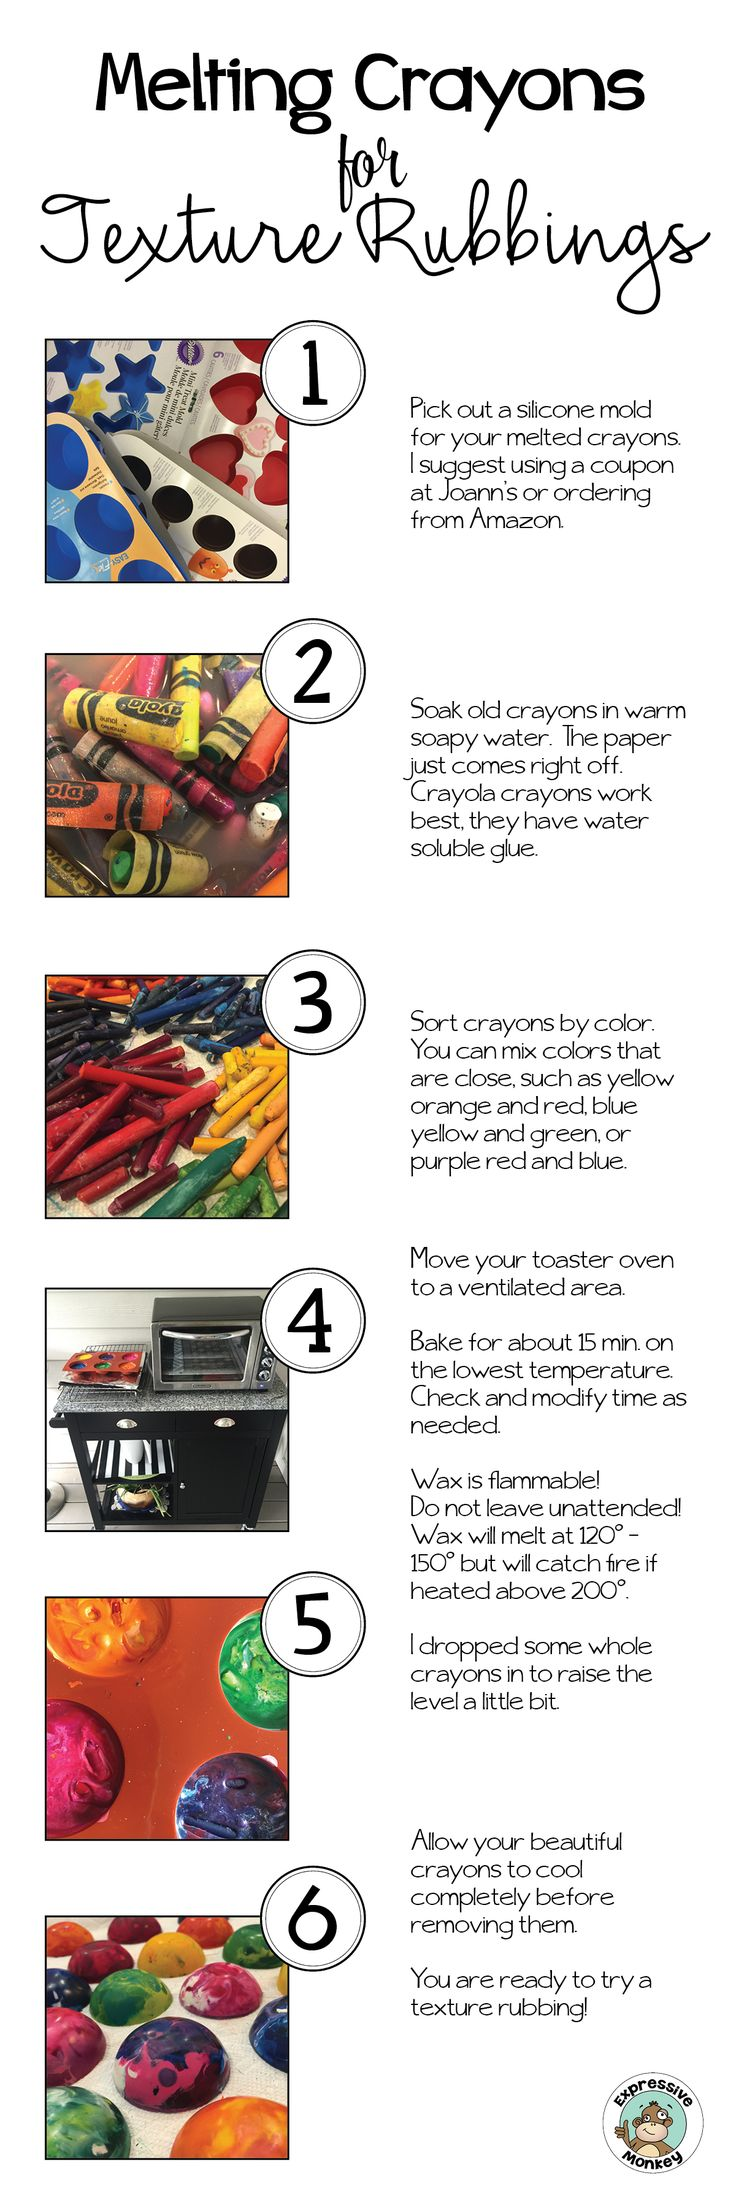 Crayon melting art images amp pictures becuo - Make Chunky Recycled Crayons To Make Your Leaf Rubbings